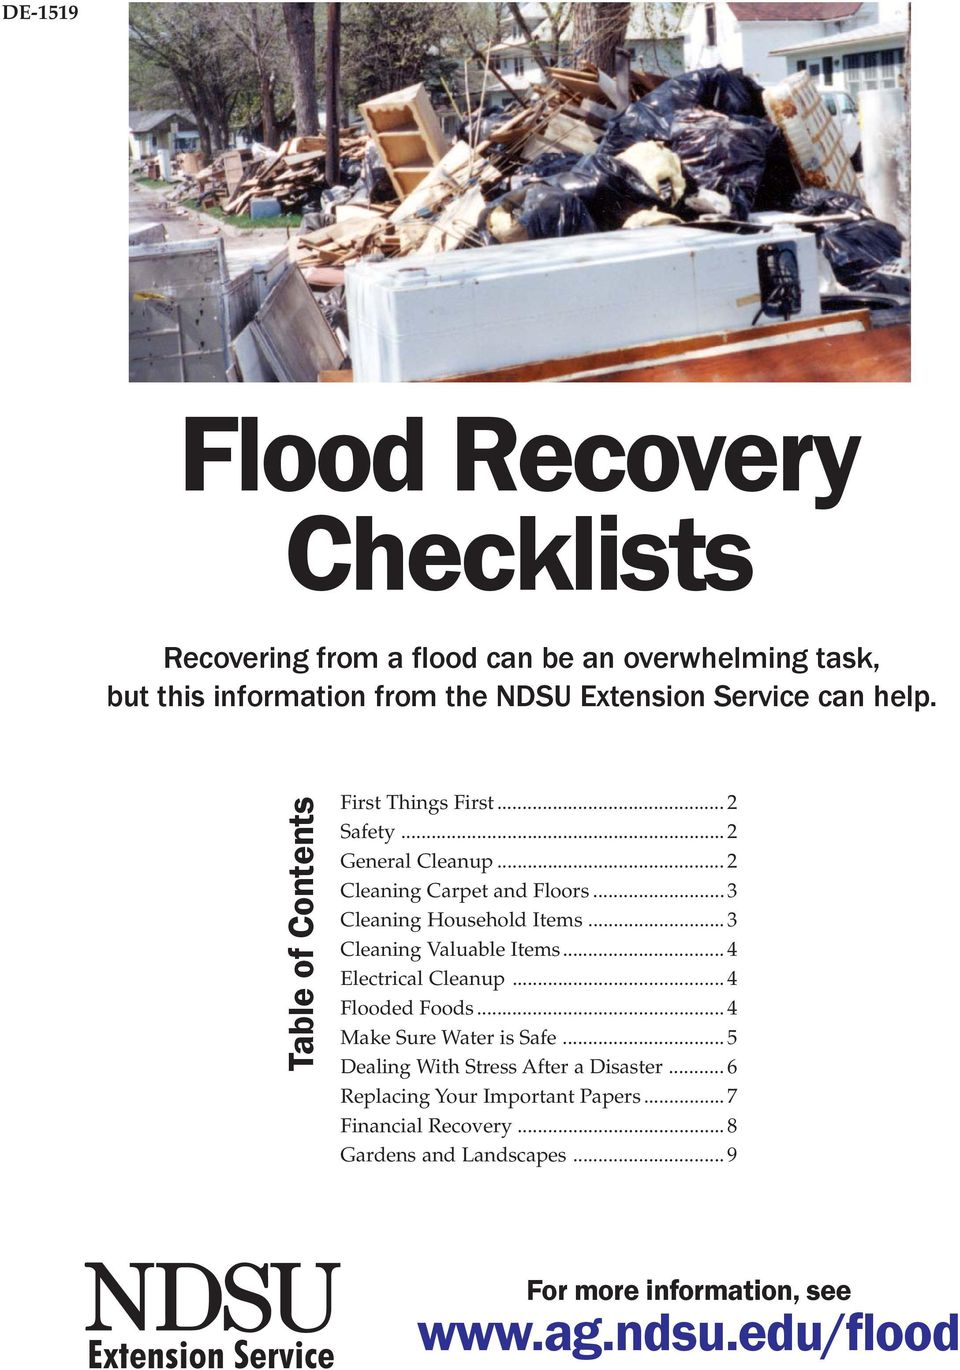 .. 3 Cleaning Valuable Items... 4 Electrical Cleanup... 4 Flooded Foods... 4 Make Sure Water is Safe... 5 Dealing With Stress After a Disaster.